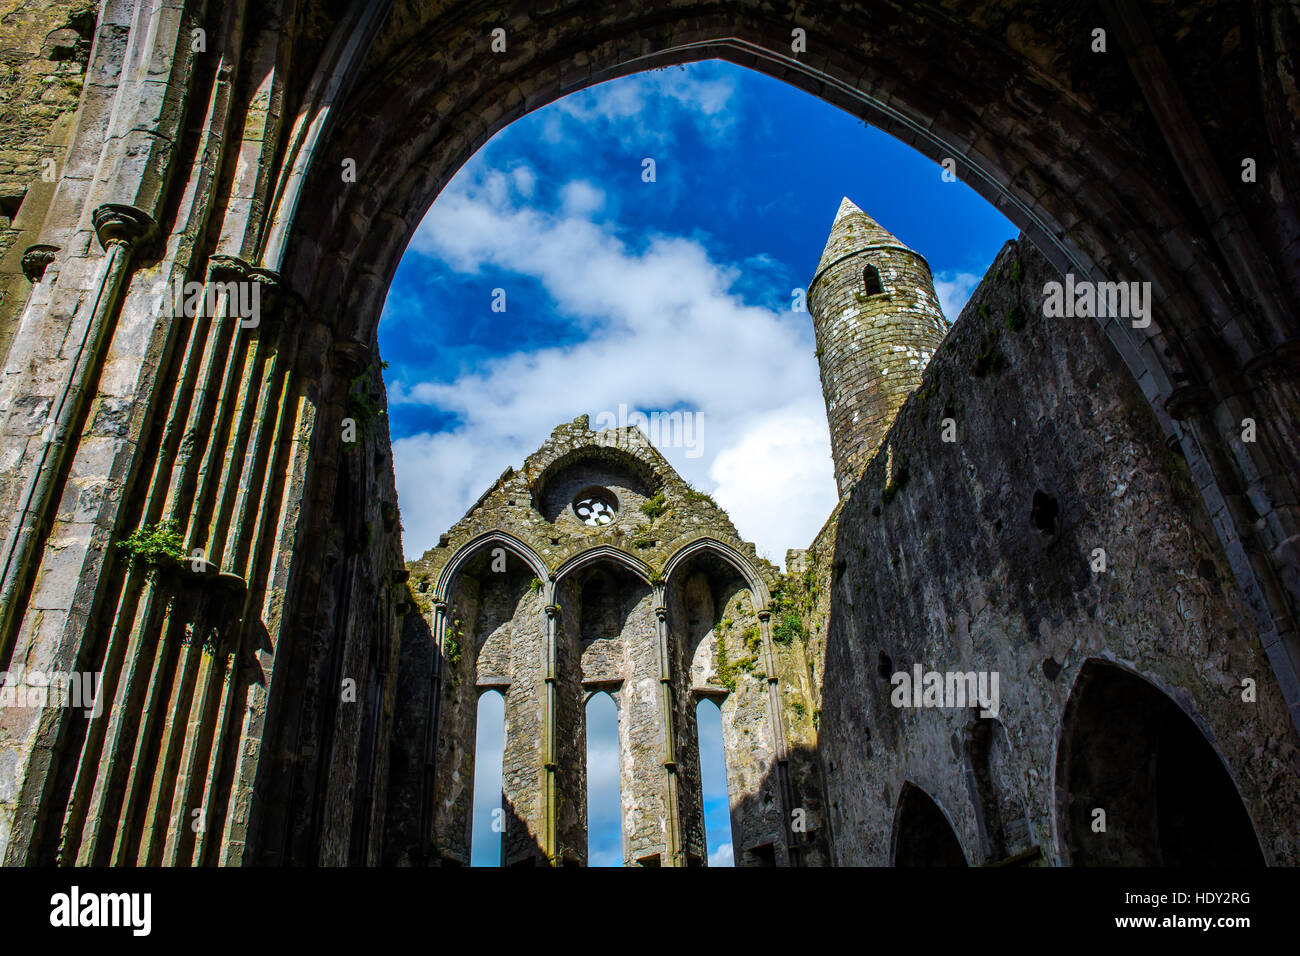 Ruin of Monastery at Rock of Cashel in Ireland - Stock Image